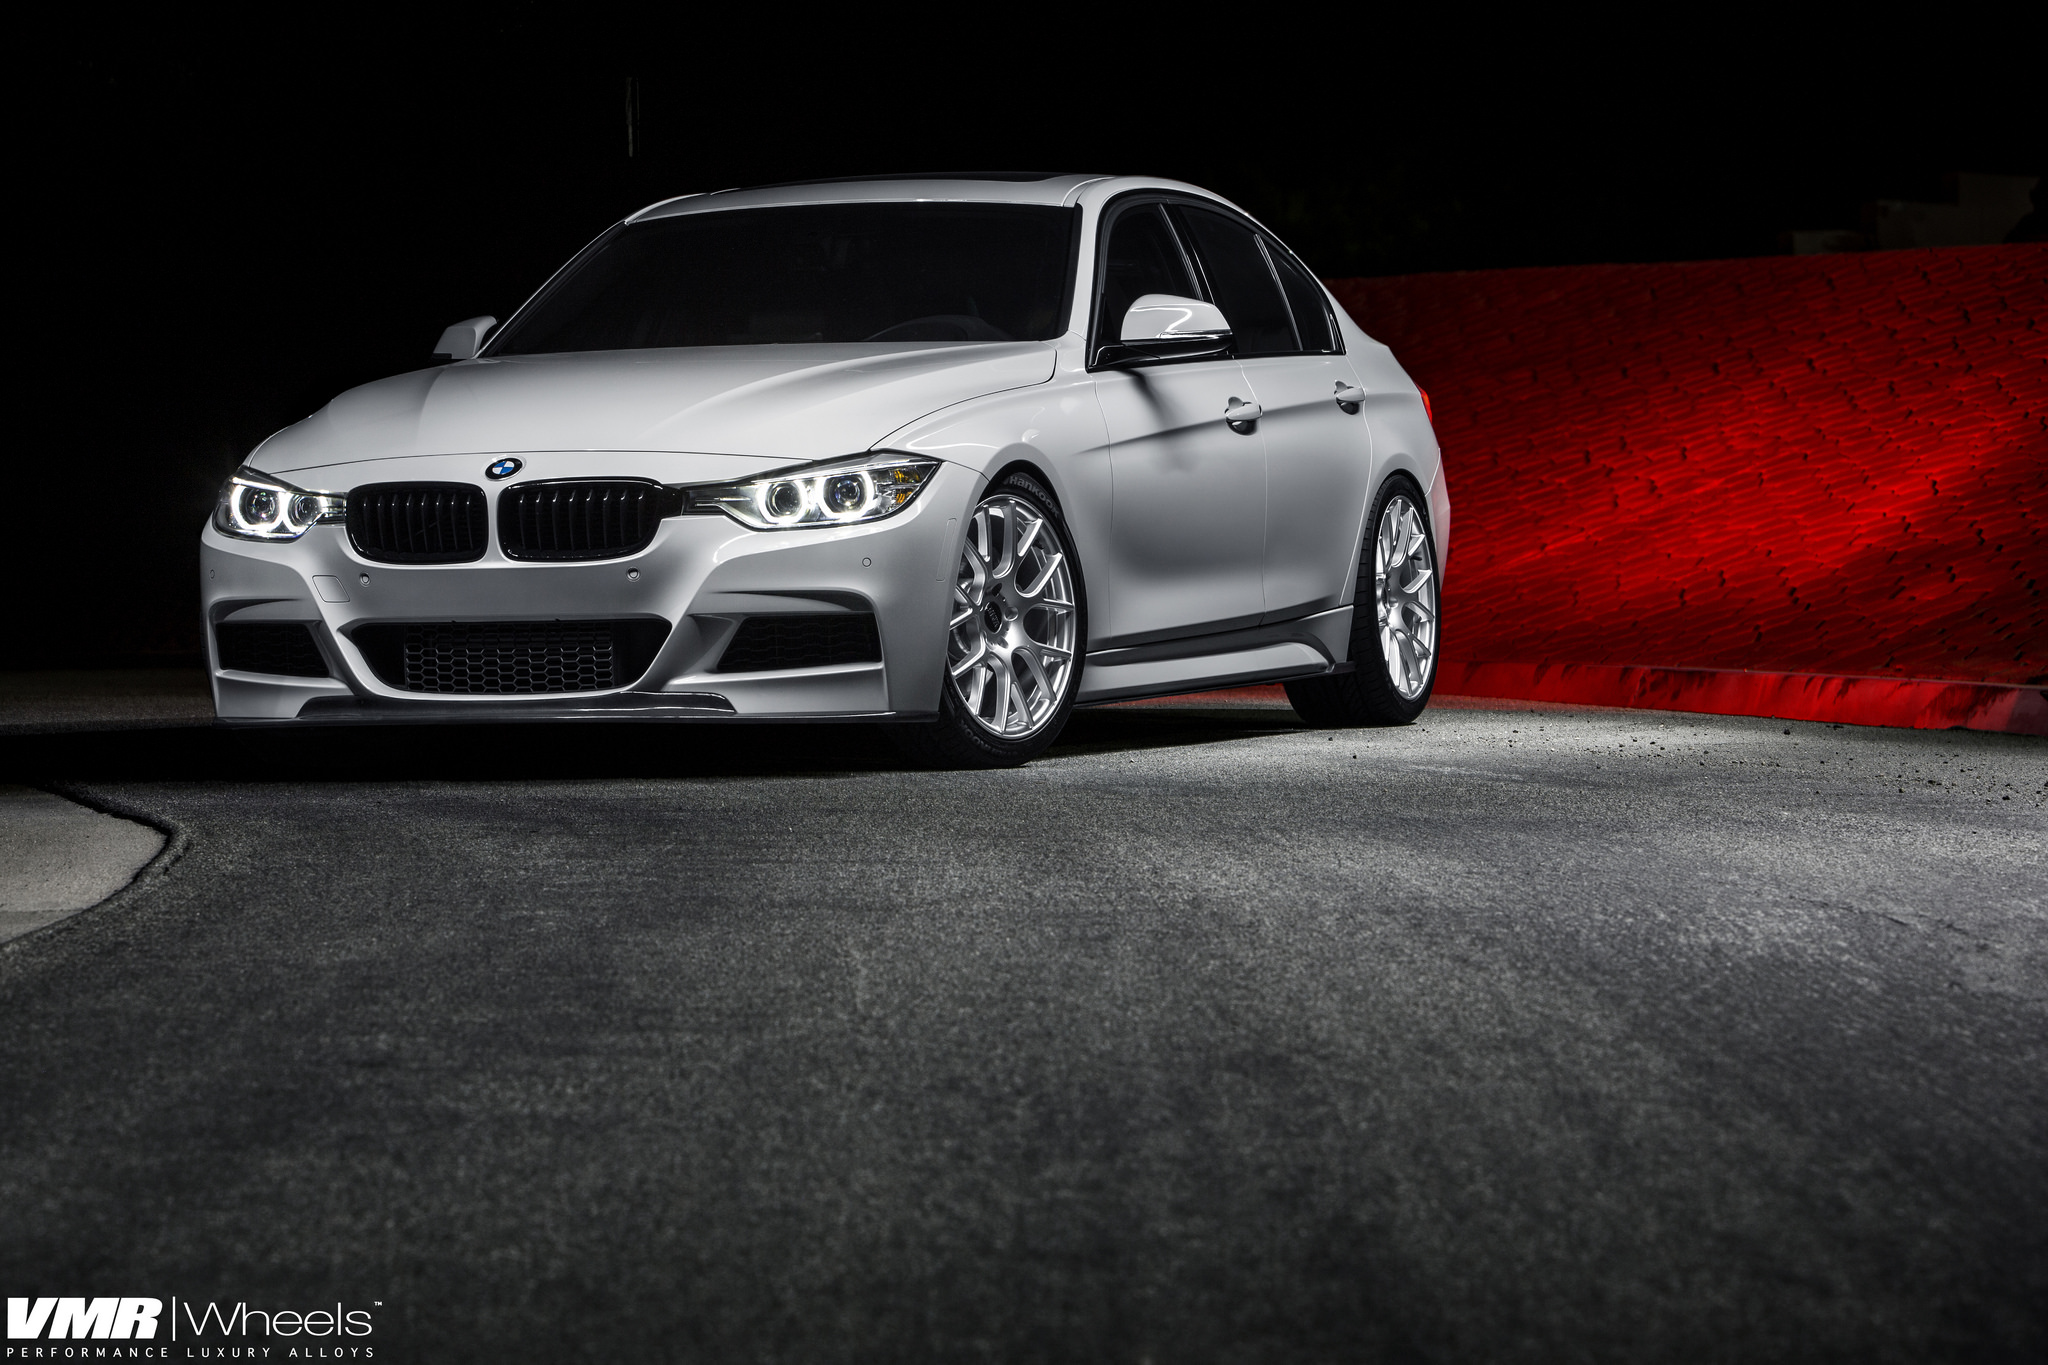 BMW 3-Series by VMR Wheels